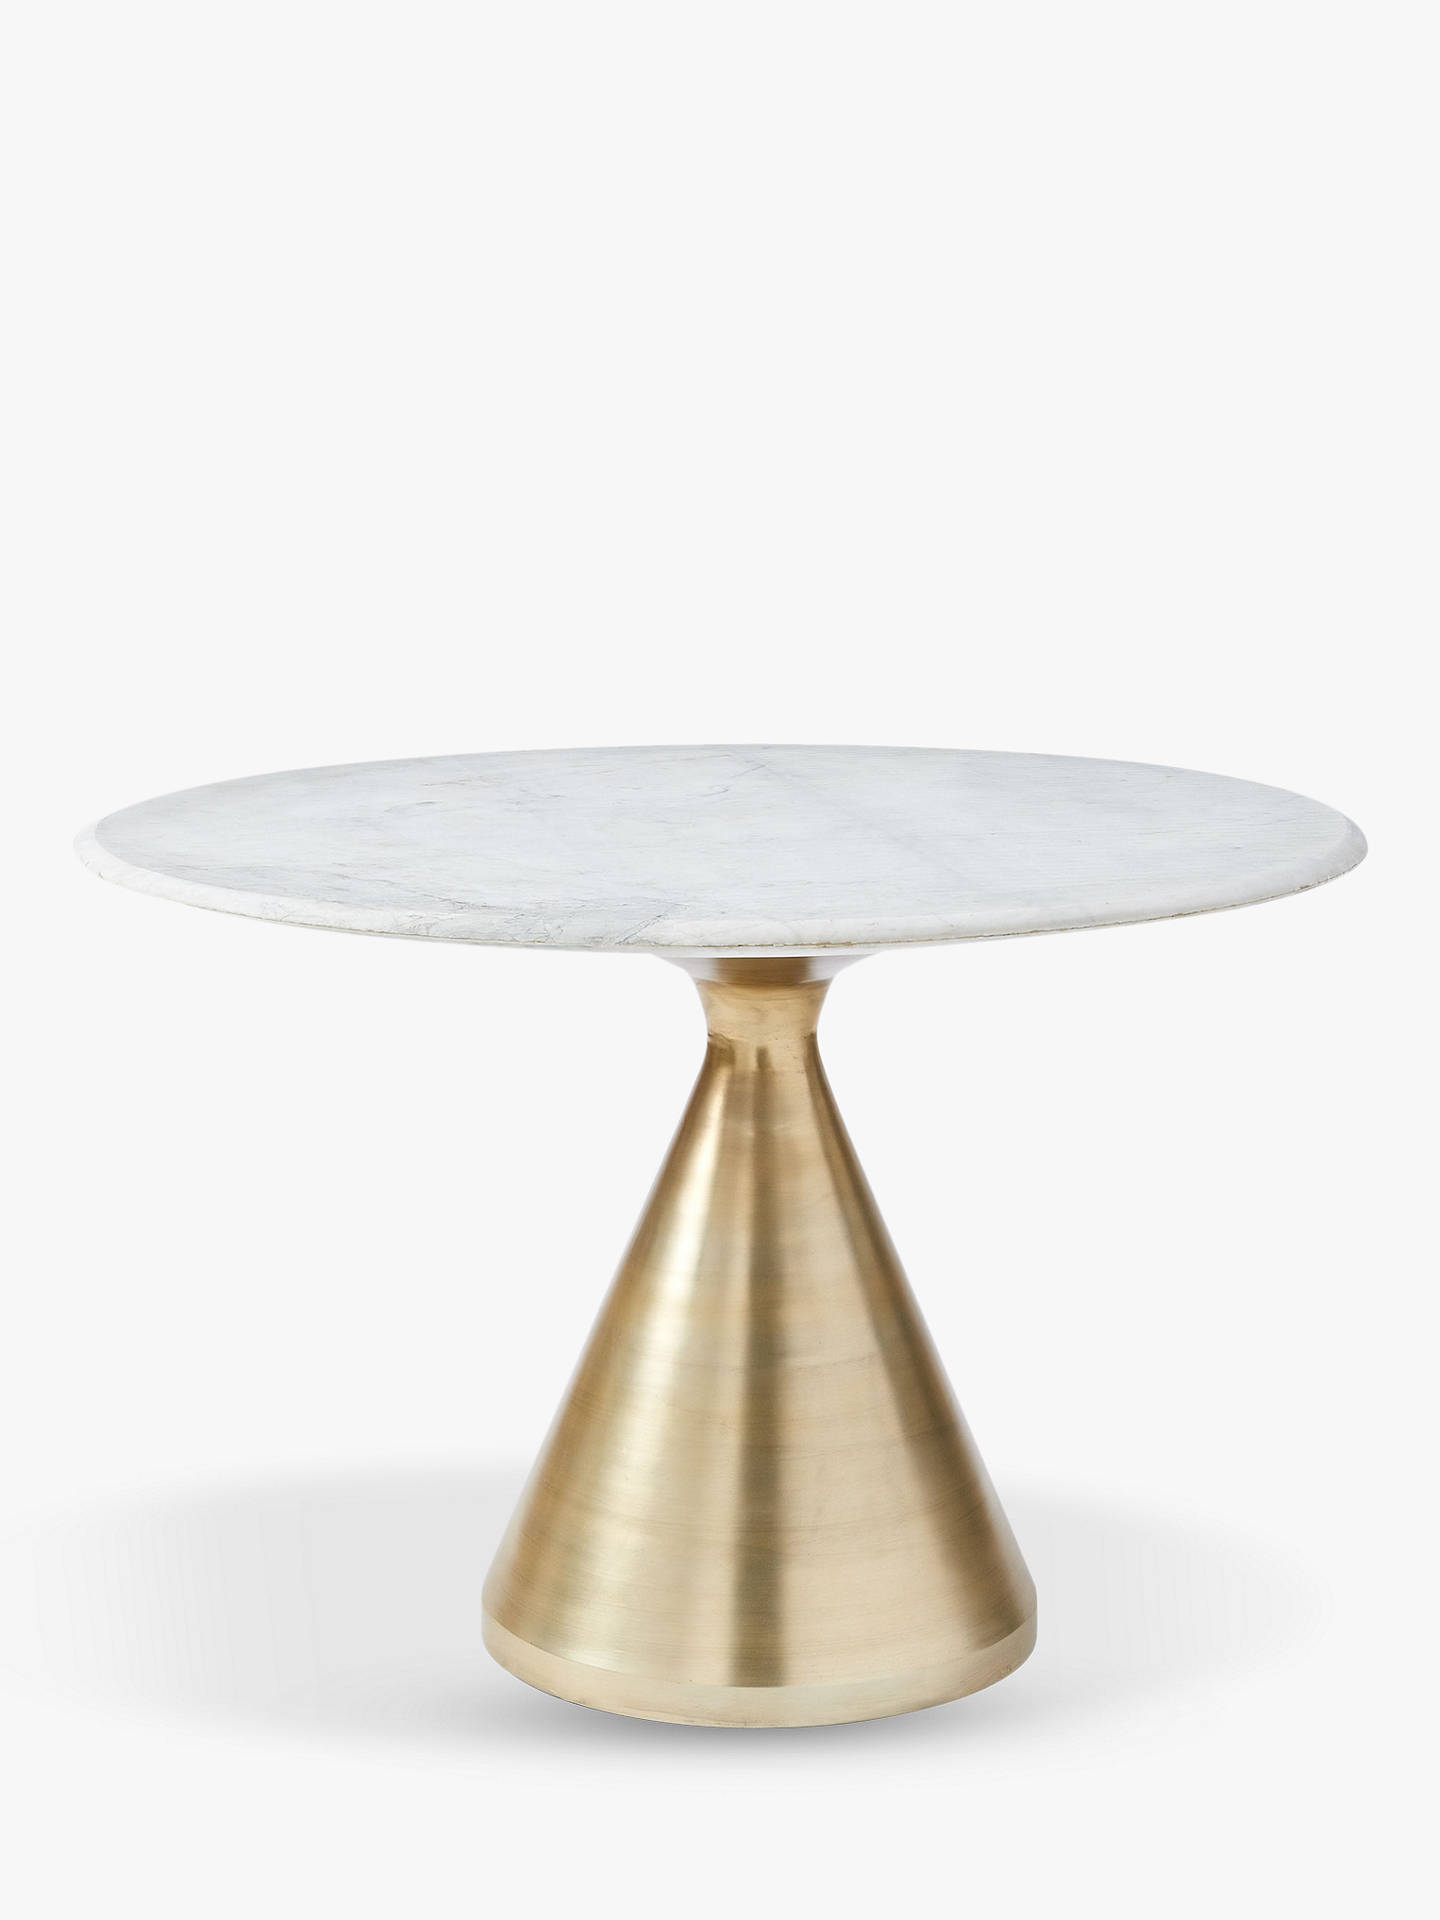 John Lewis & west elm Silhouette Marble 4 Seater Pedestal Dining Table Bronze